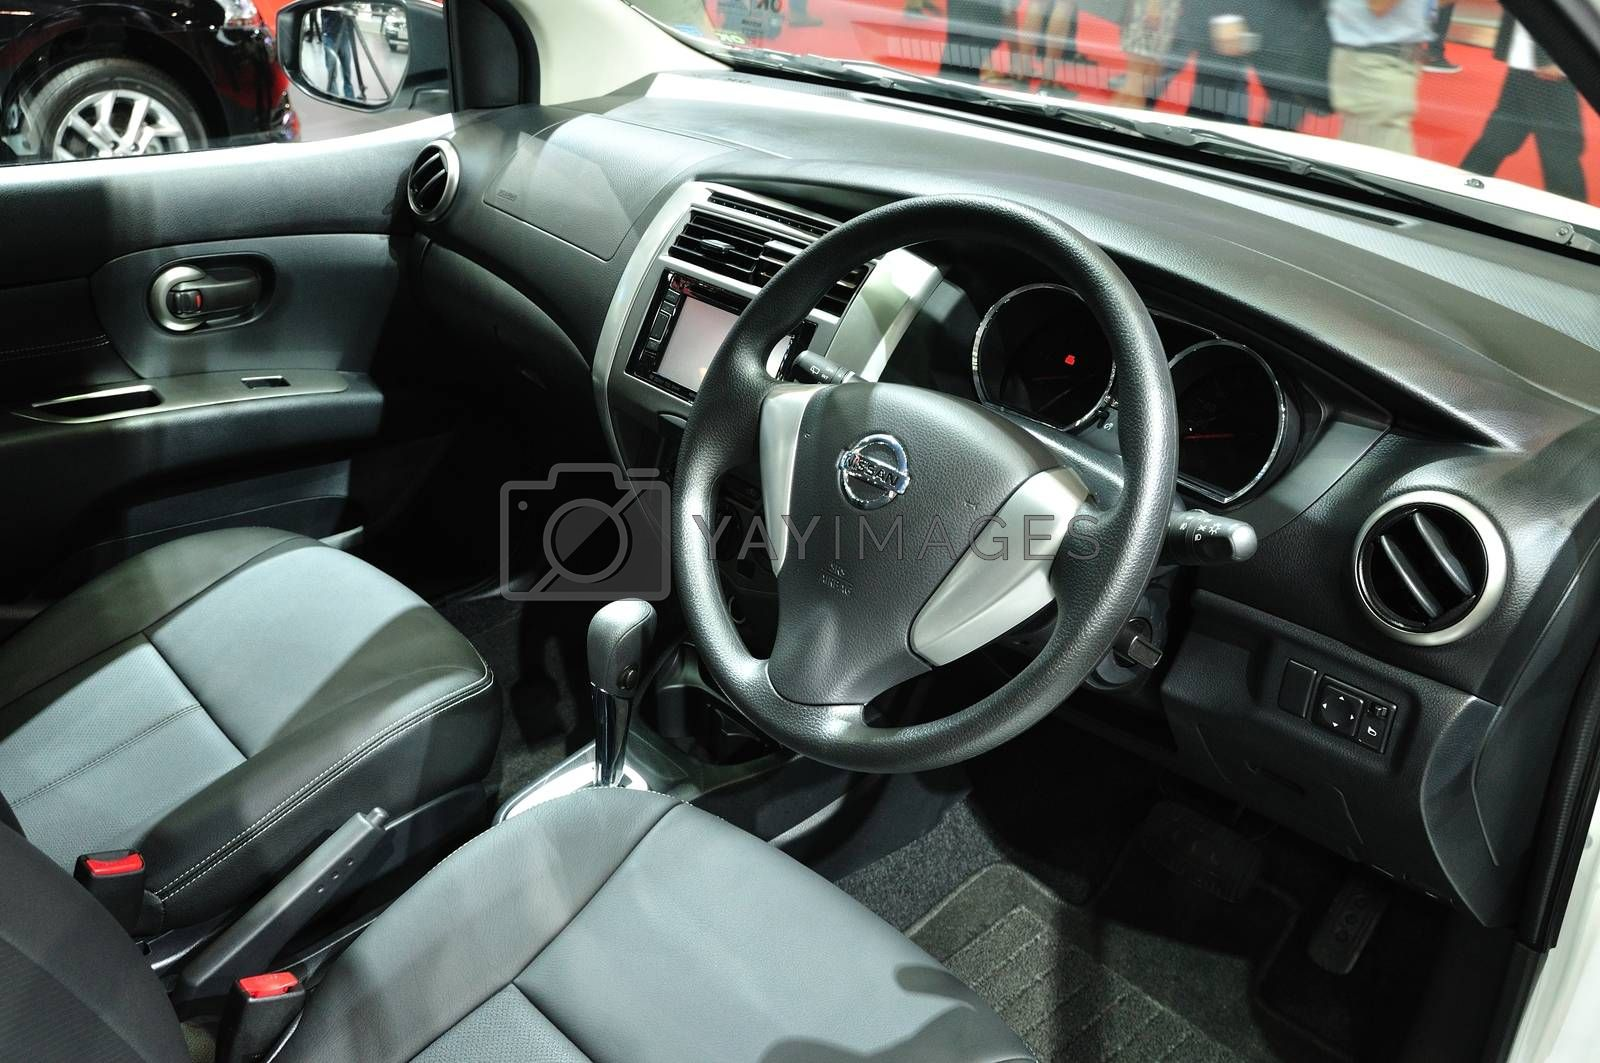 NONTHABURI - MARCH 25: Interior design of Nissan Livina on displ by thampapon